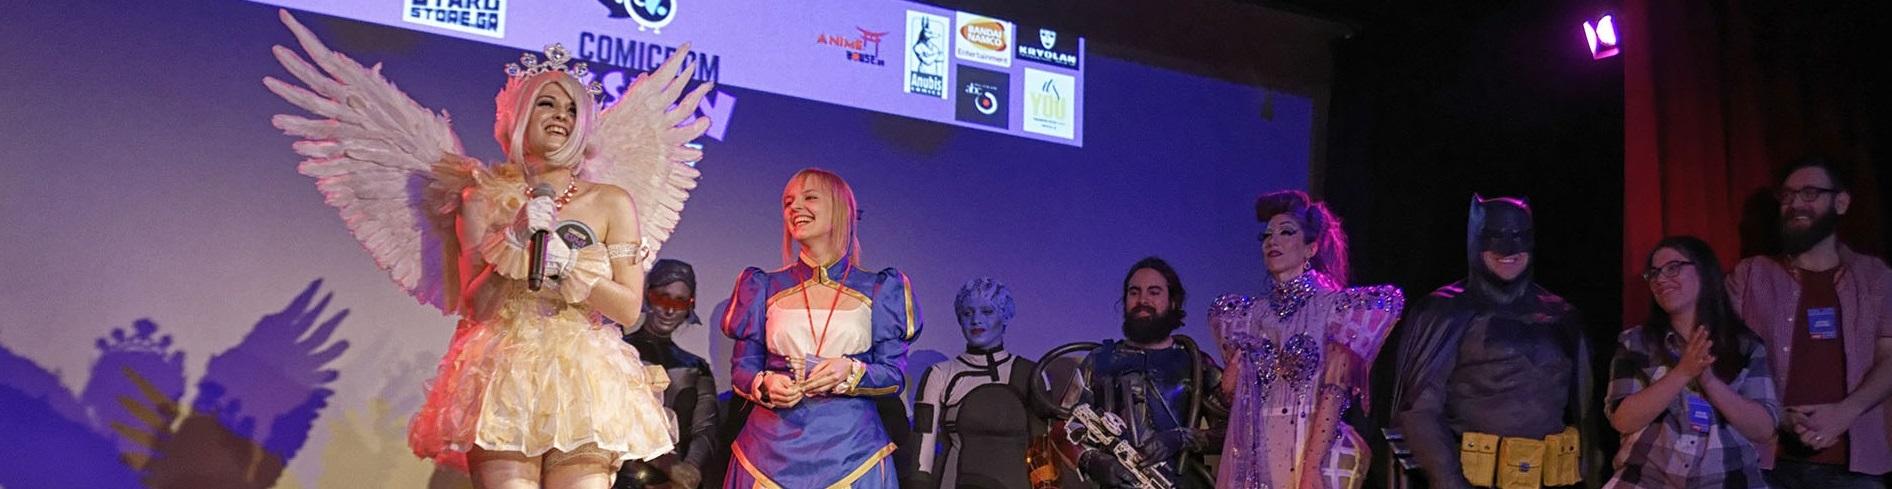 Comicdom Cosplay 2017 Winners